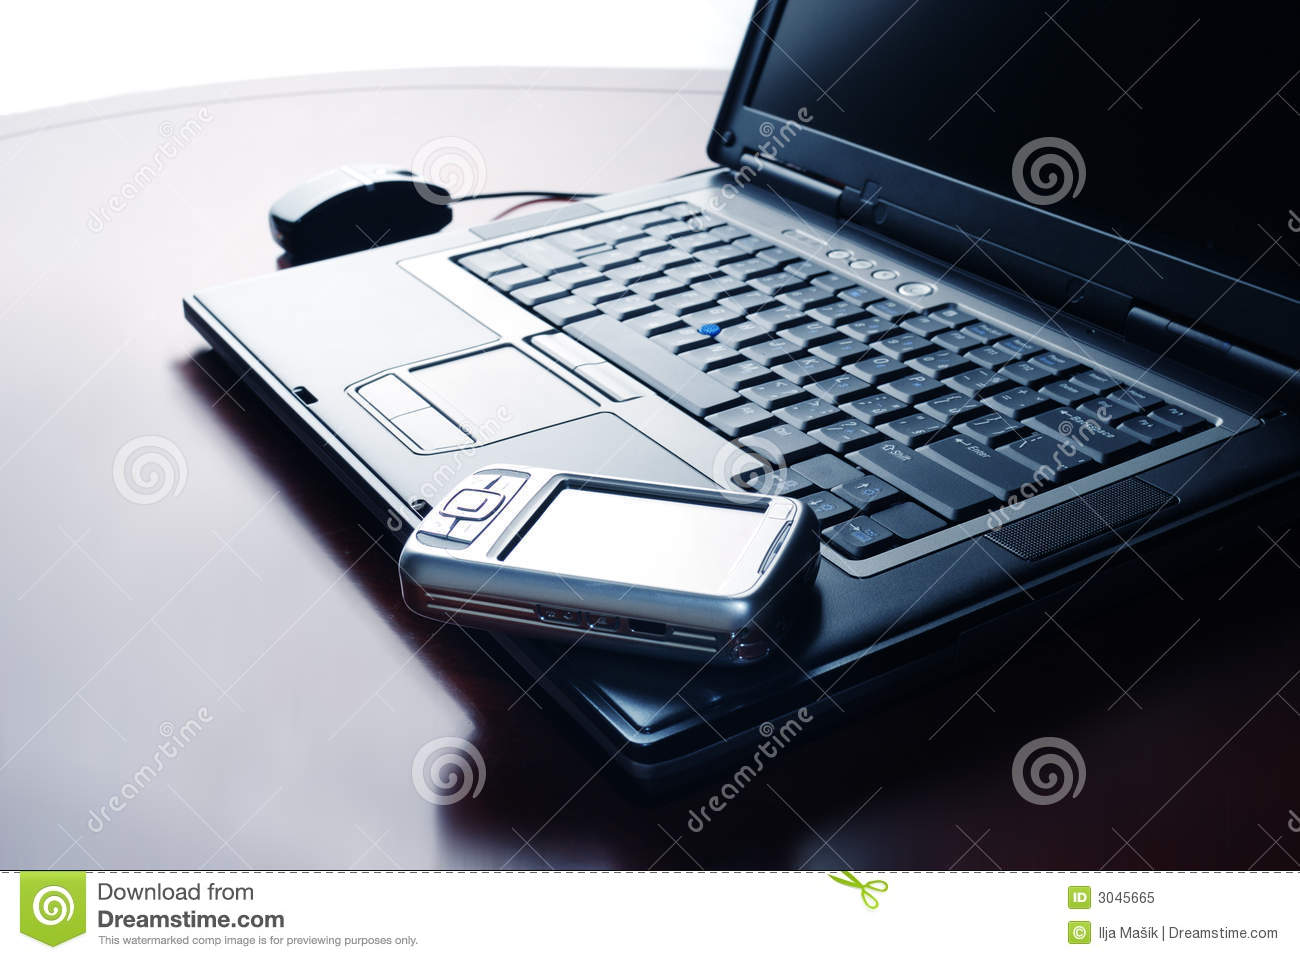 Laptop and Pocket PC